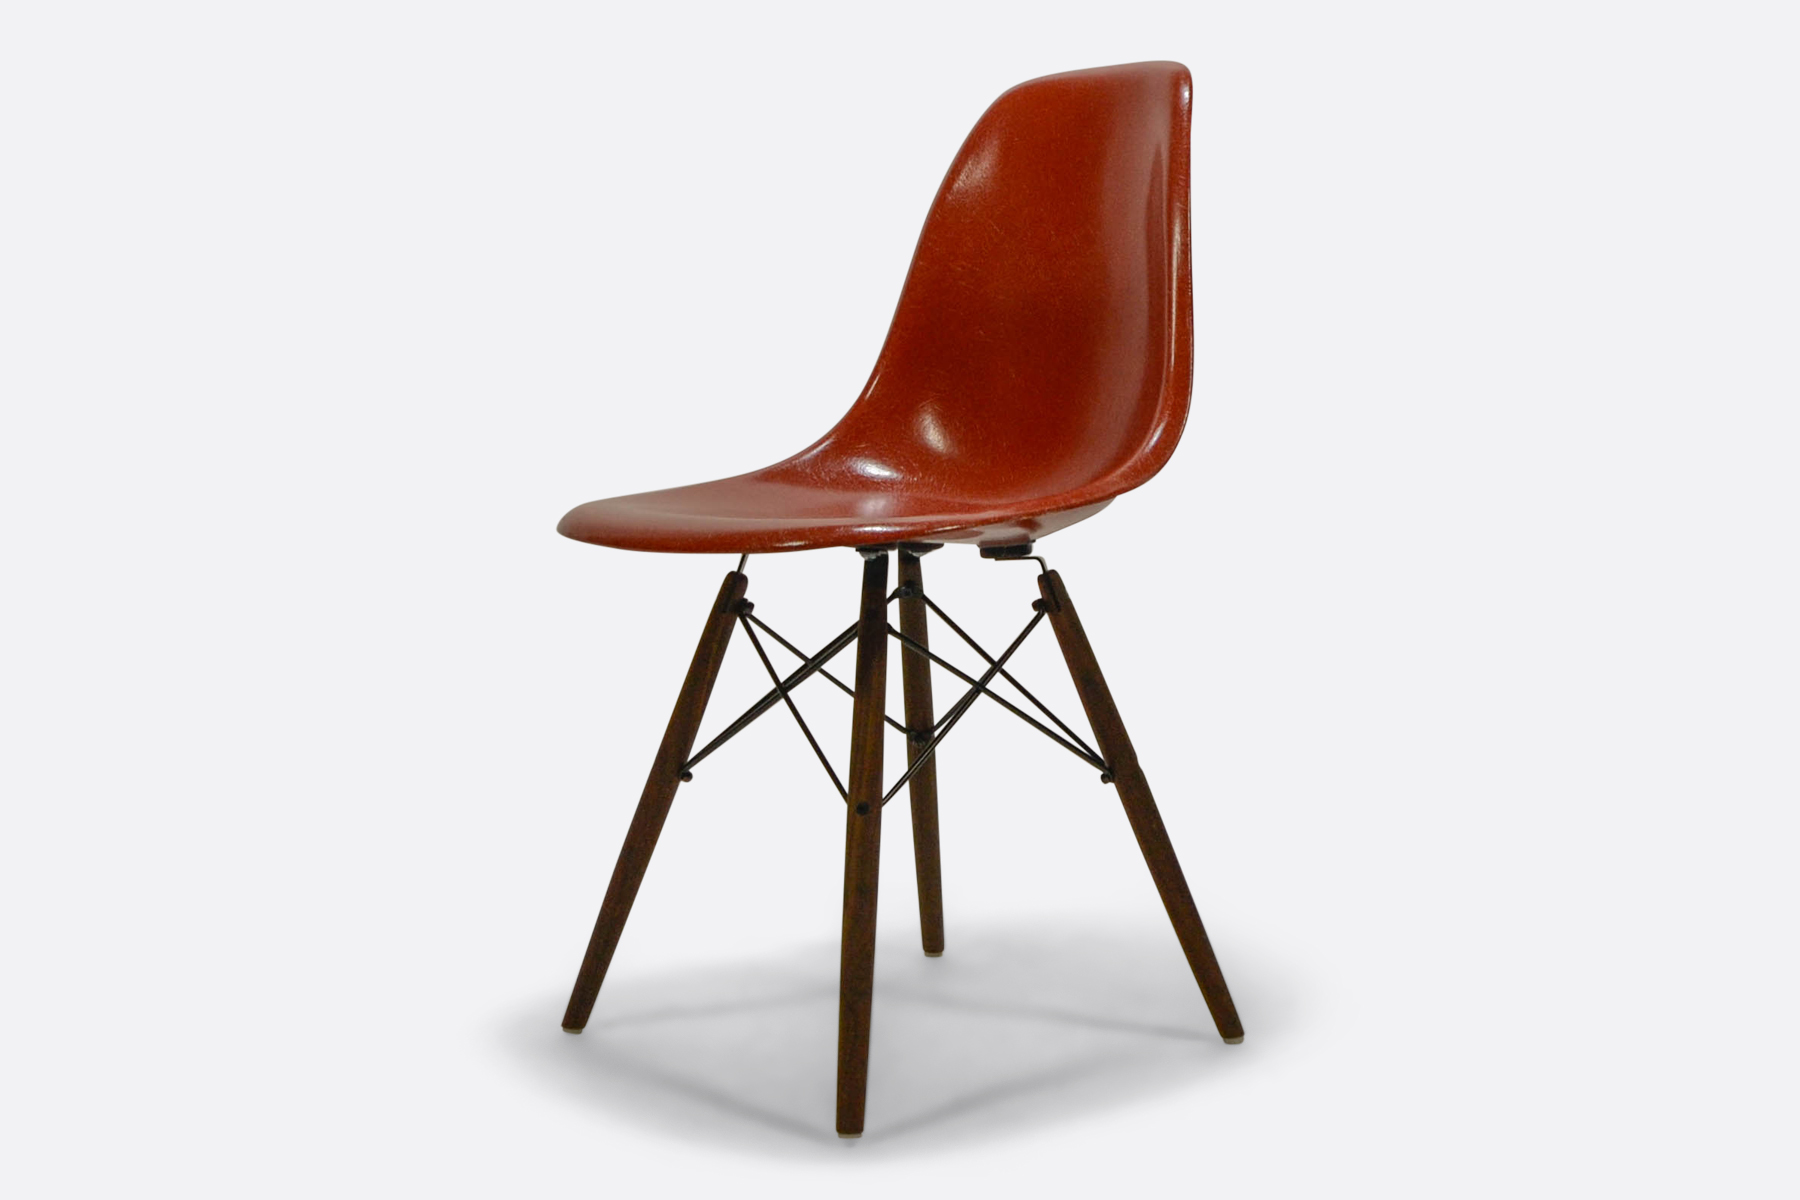 Eames Dsw Vintage Eames Fiberglass Side Chair Terracotta